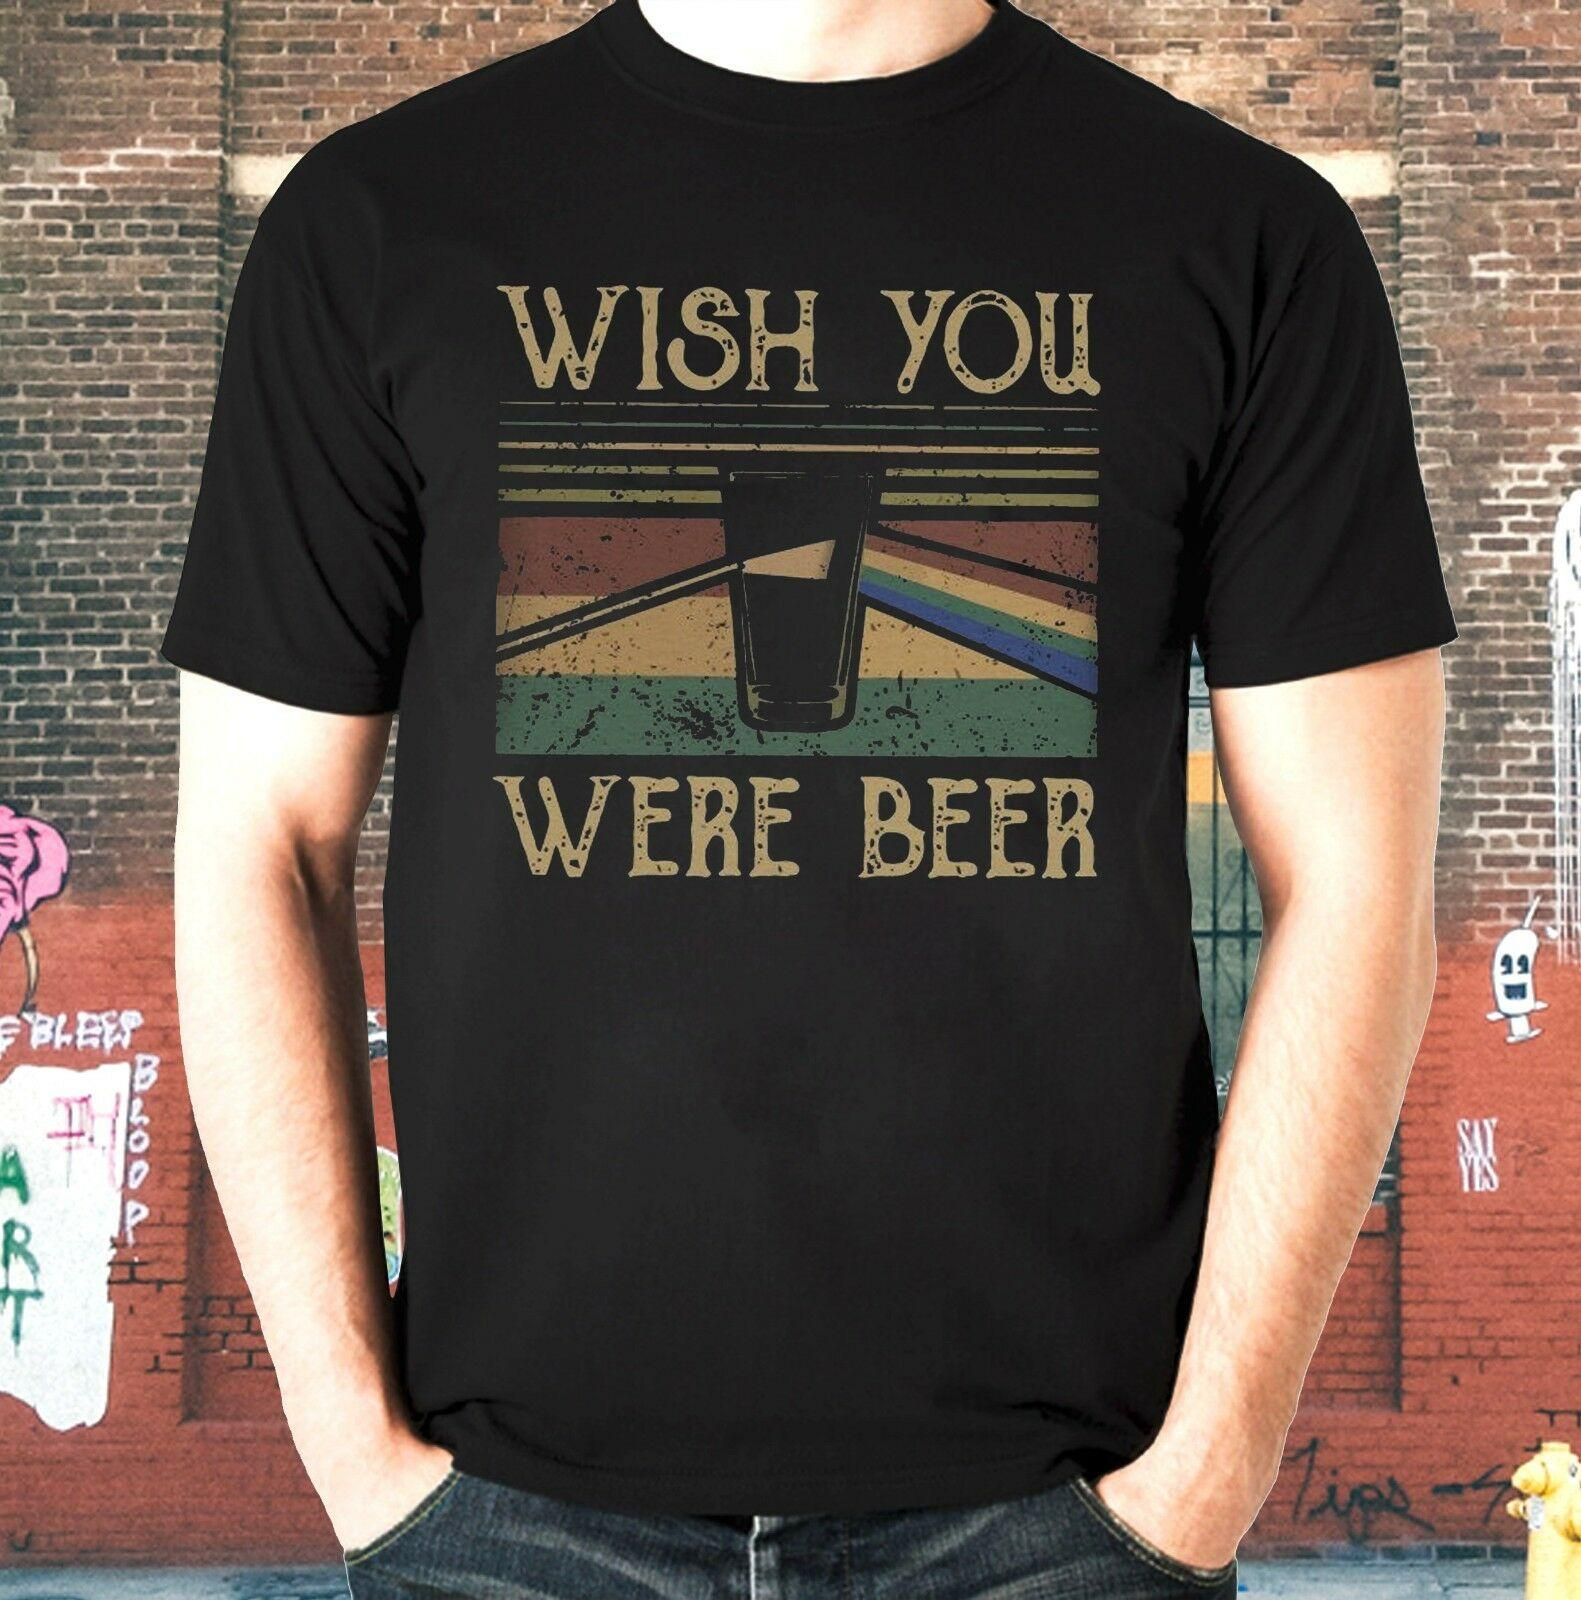 a41d865c26fc Retro Wish You Were Beer Pink Floyd T Shirt Unisex Heavy Cotton Tee Funny  Unisex Tshirt Shirts Designer Designer White T Shirts From Stylemixxuk, ...